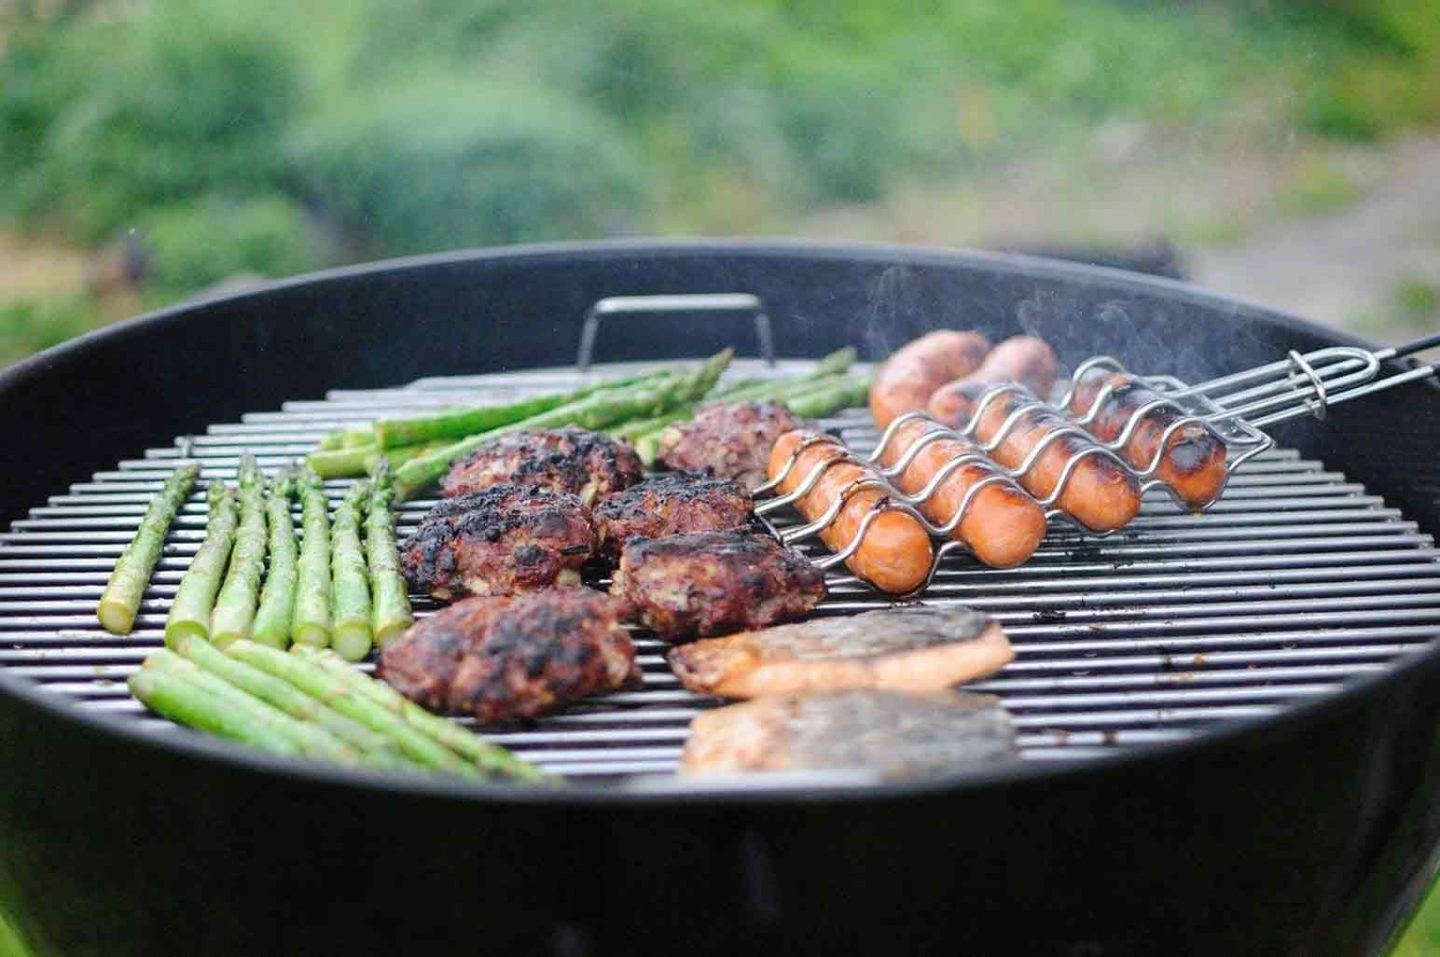 Tips for a backyard barbecue